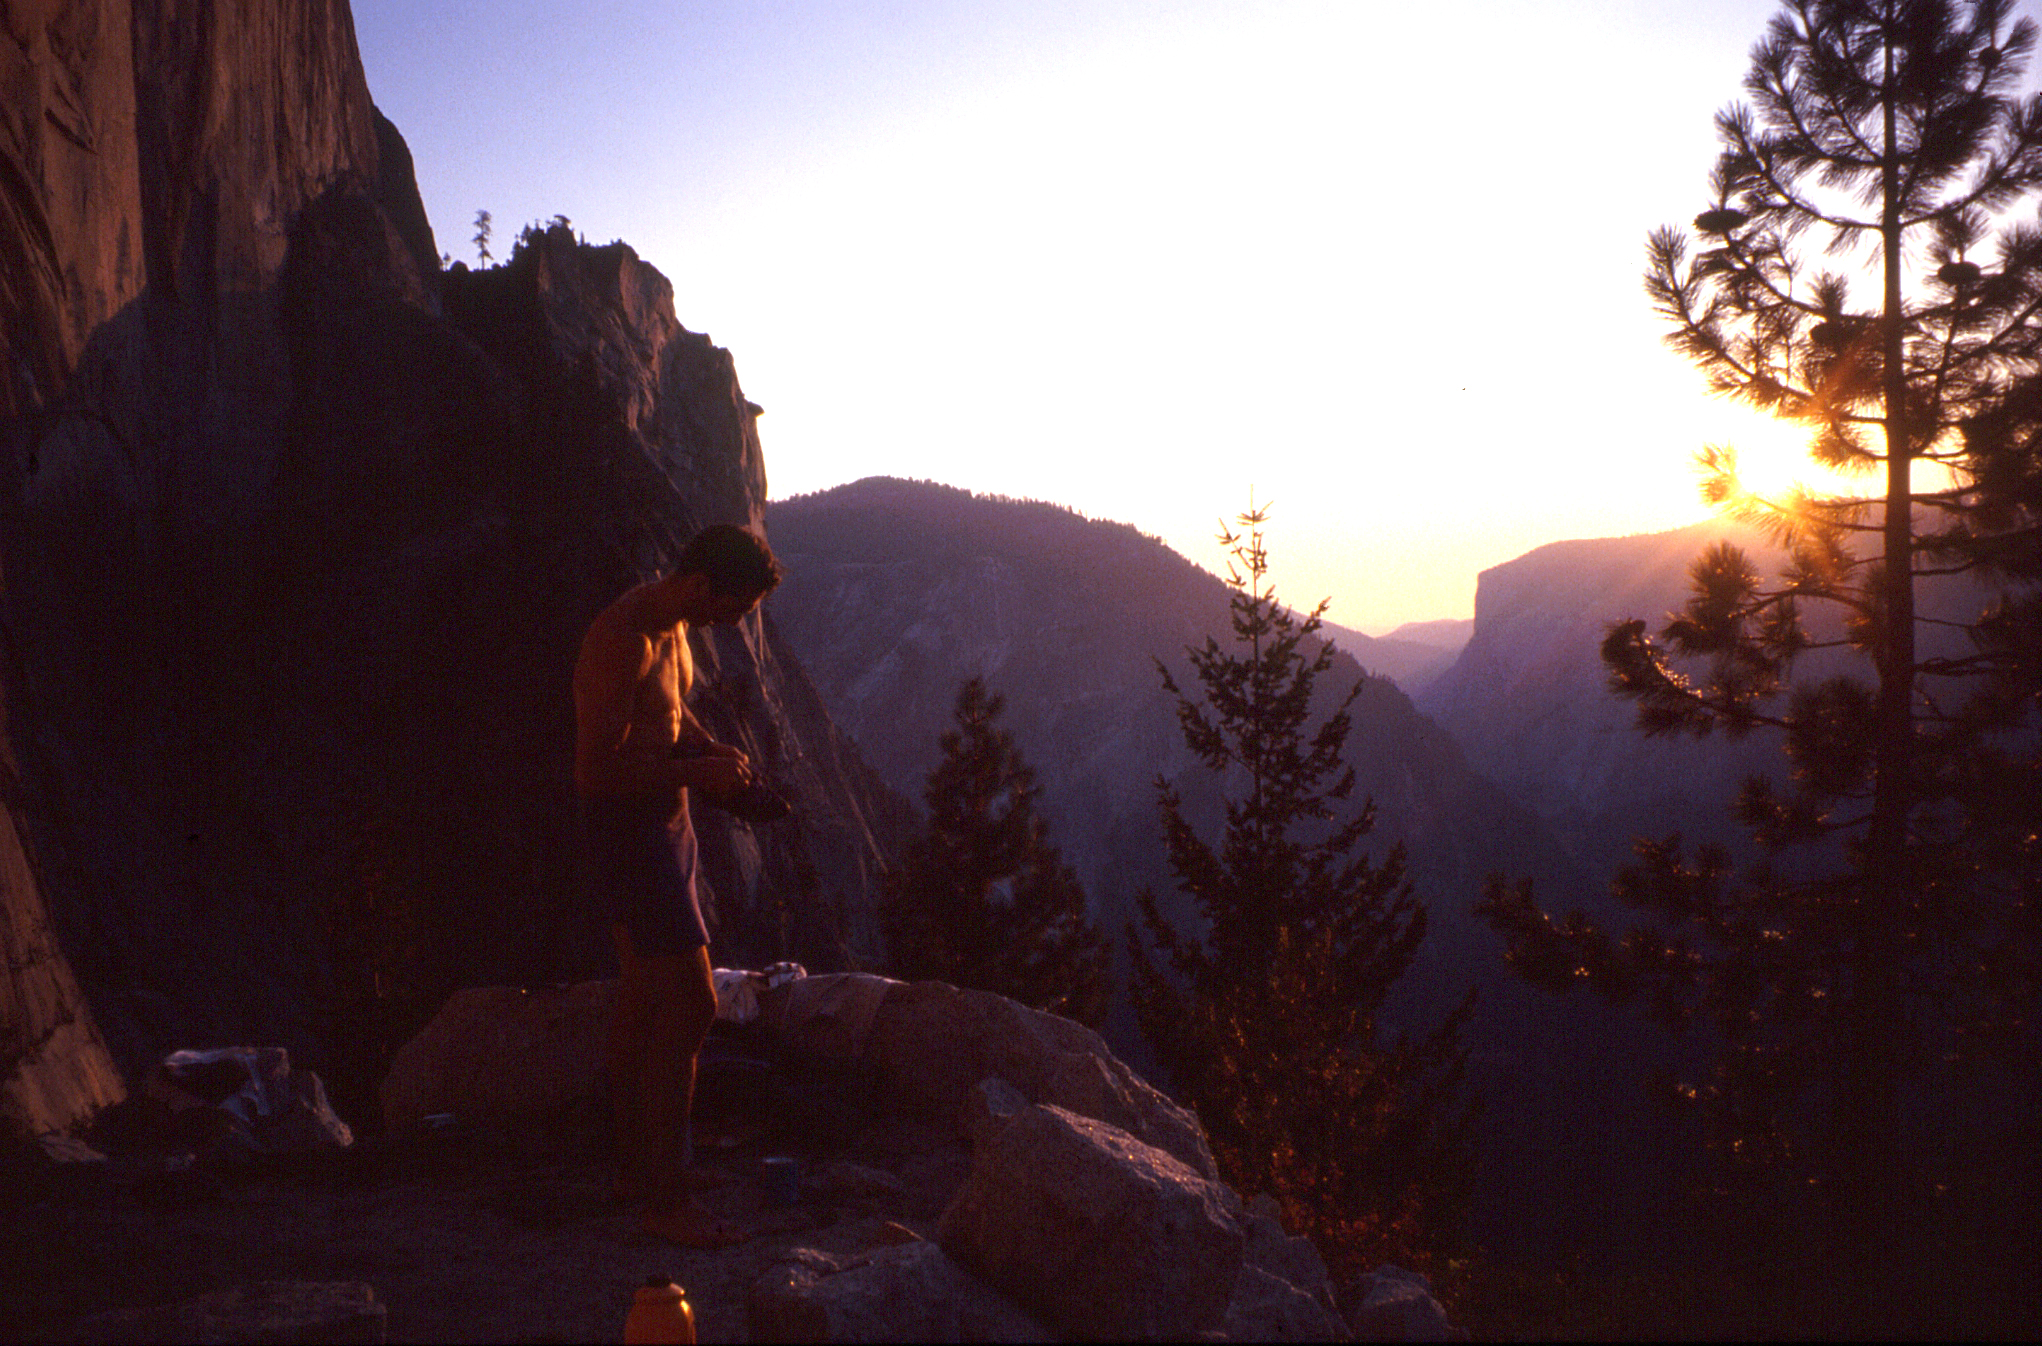 At the base of the northwest face of Half Dome prior to making a free ascent of the Regular Route, 1994.